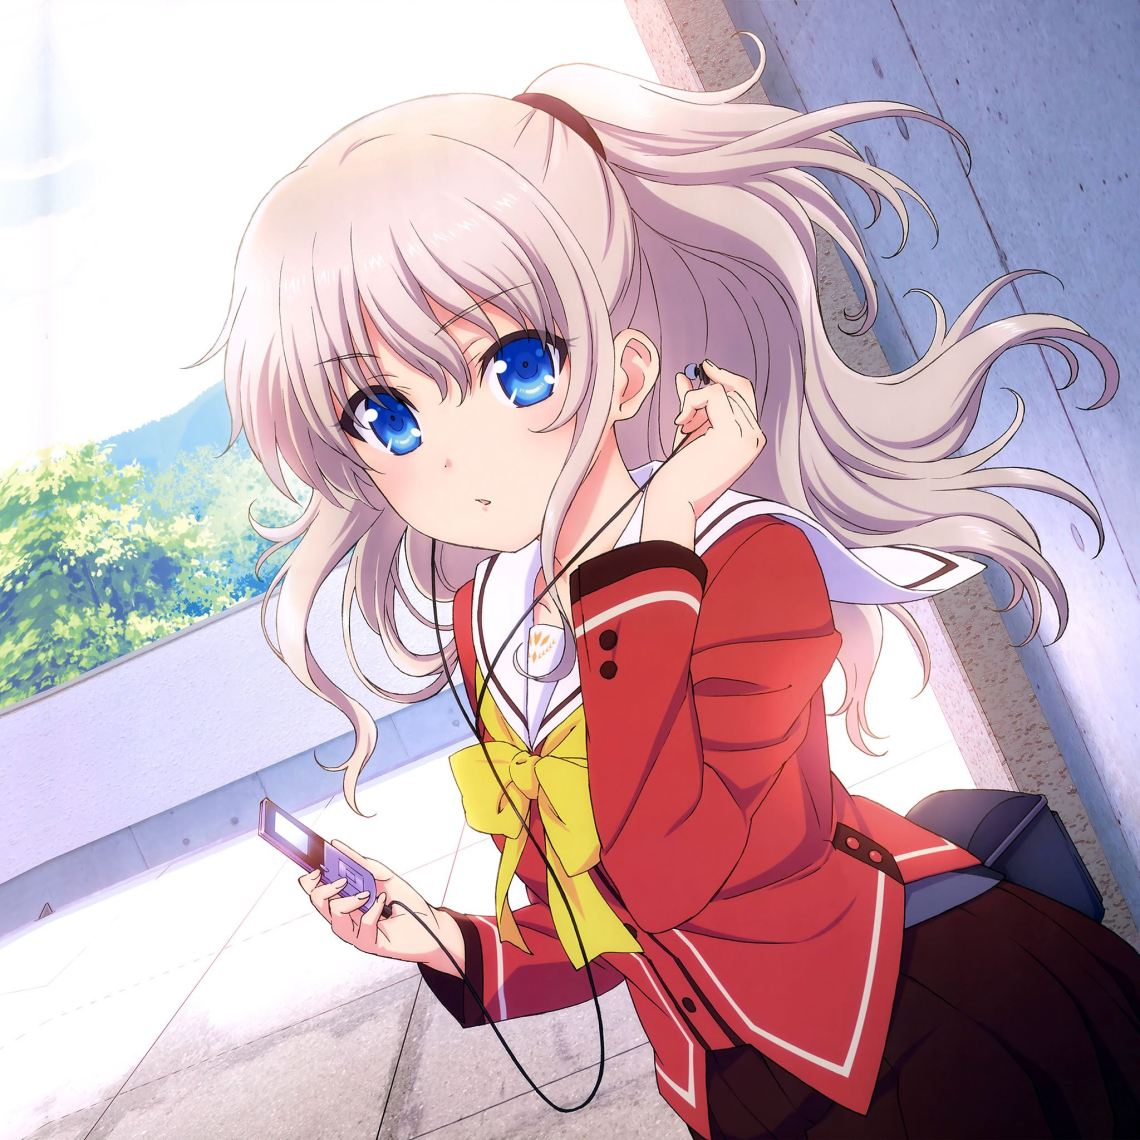 Chalorette Anime Girl Cute Art Illustration Ipad Air Wallpapers Free Download